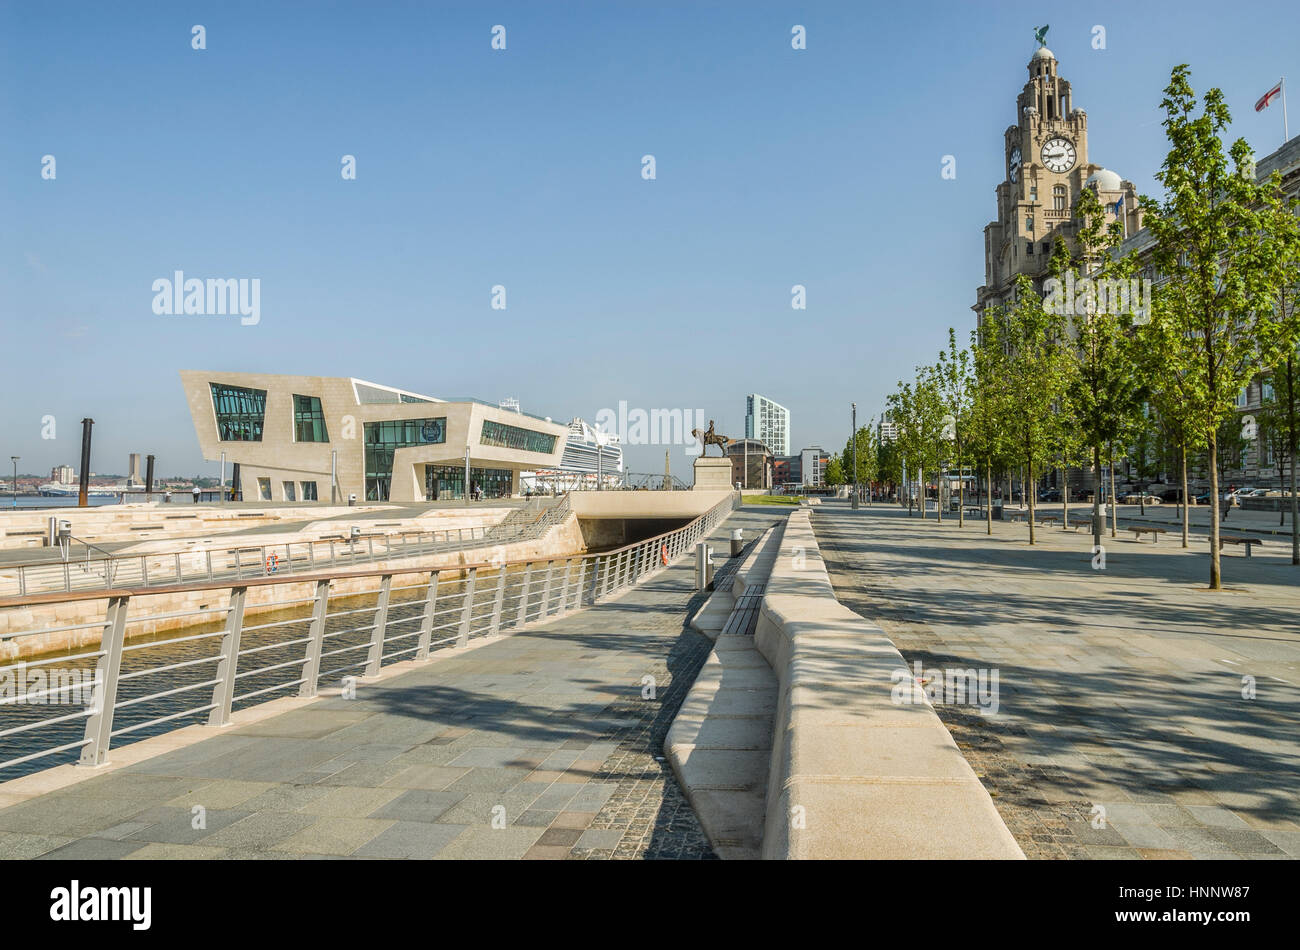 """The new ferry terminal at Pier Head in Liverpool sits in front of the """"Three Graces"""" on a UNESCO World Heritage - Stock Image"""